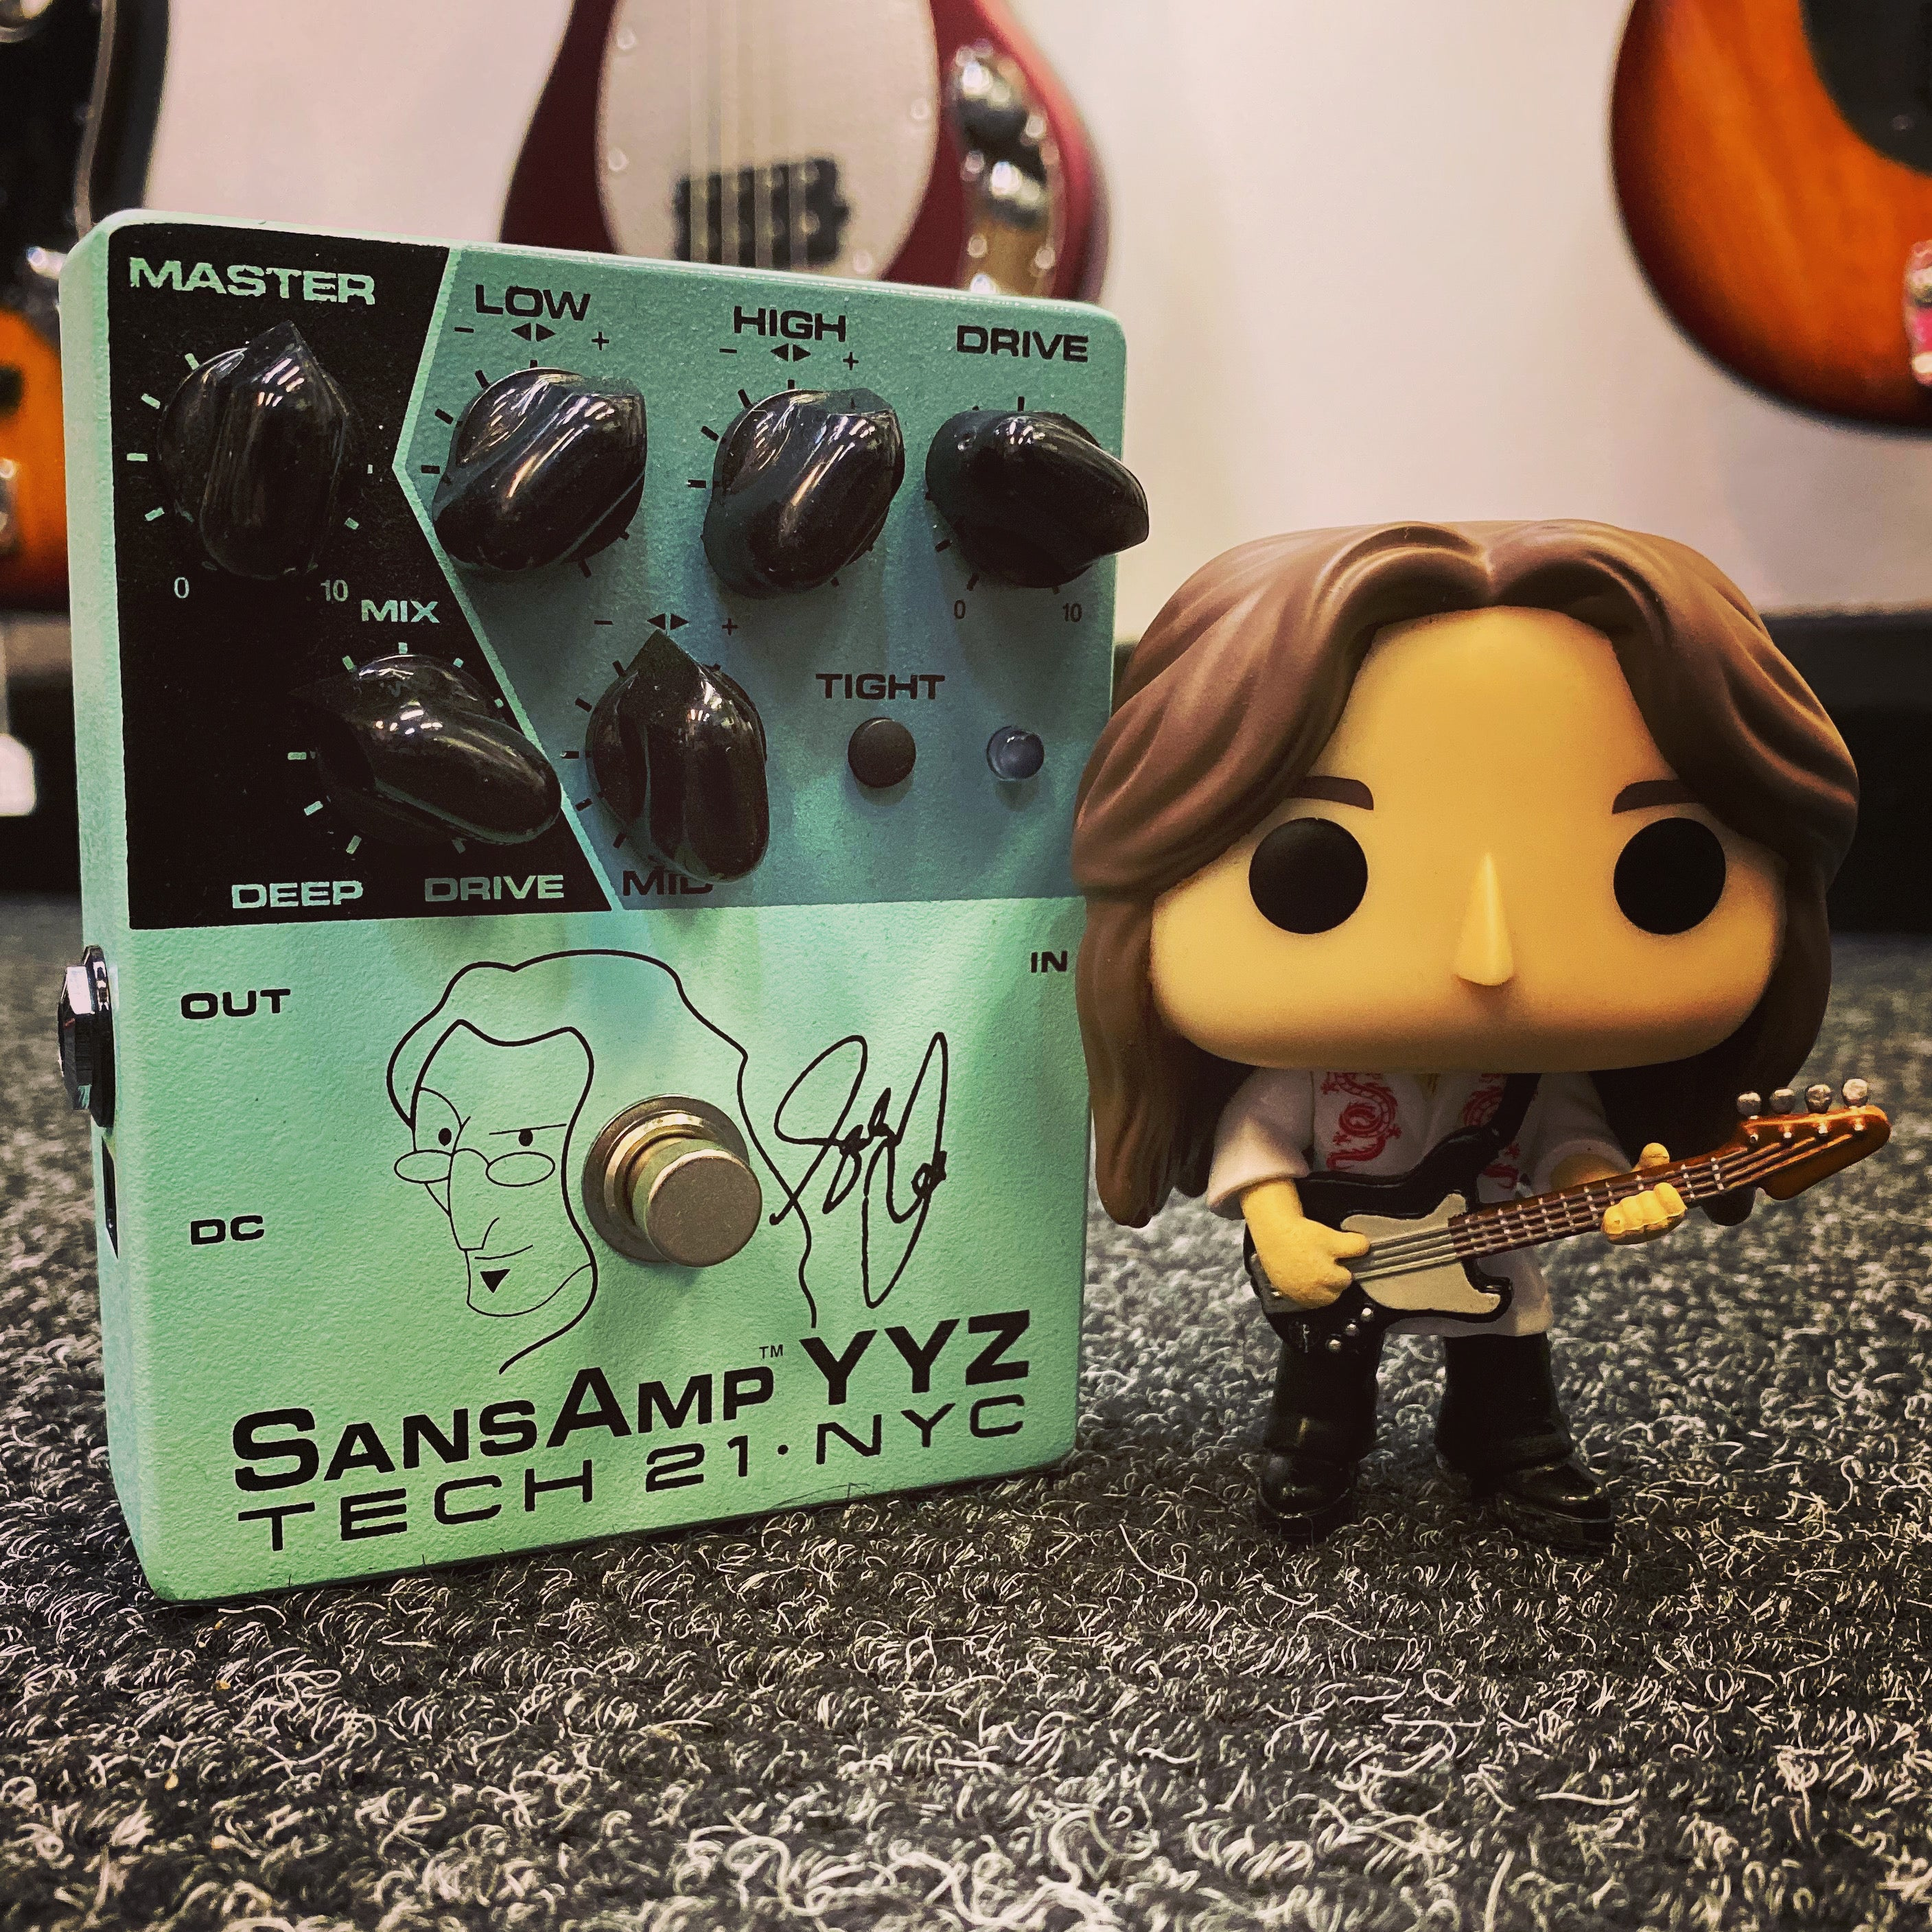 Sansamp YYZ Geddy Lee Signature Bass Pedal